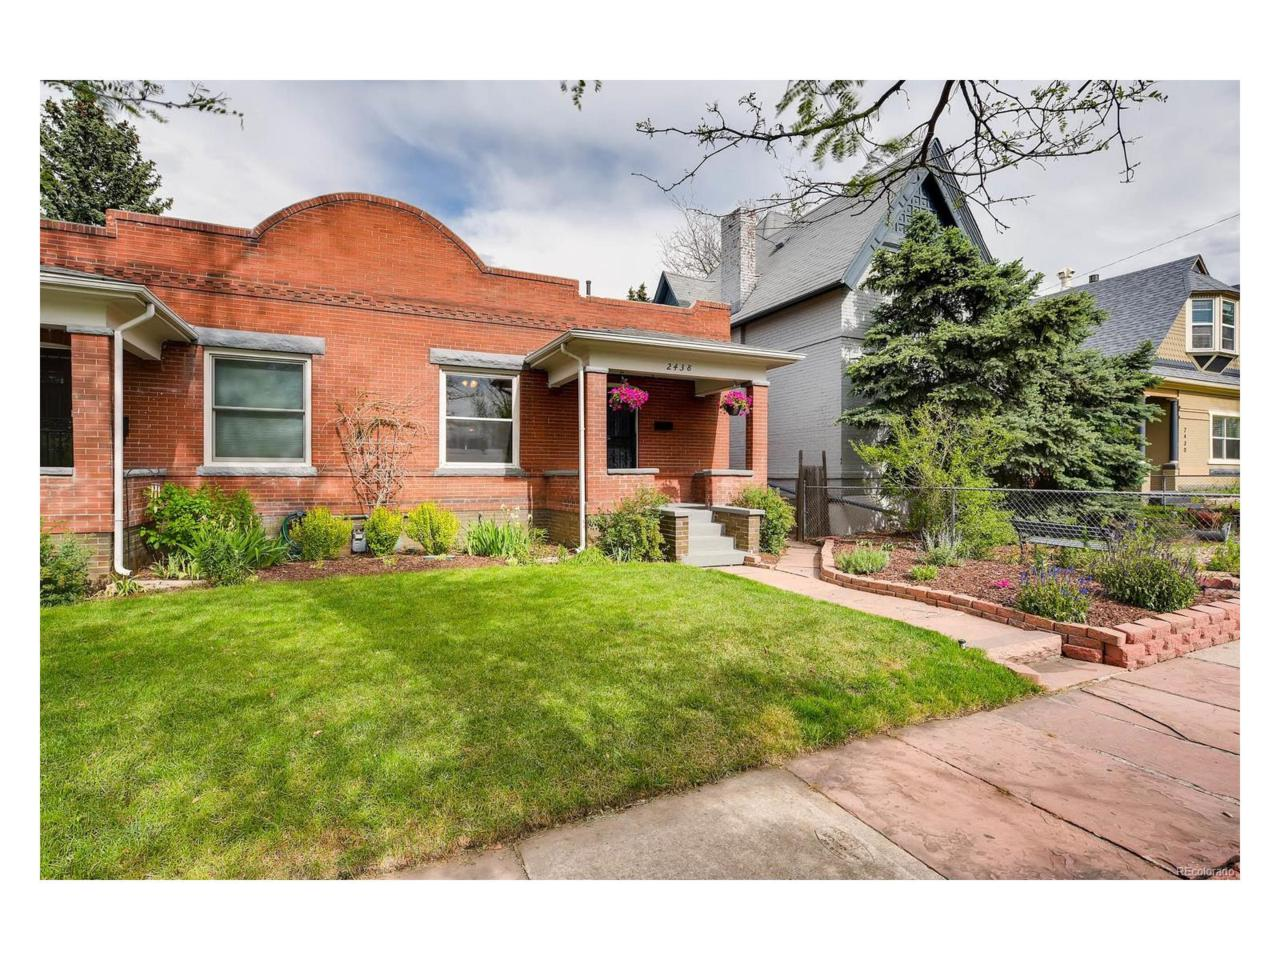 2438 N Lafayette Street, Denver, CO 80205 (MLS #9130636) :: 8z Real Estate